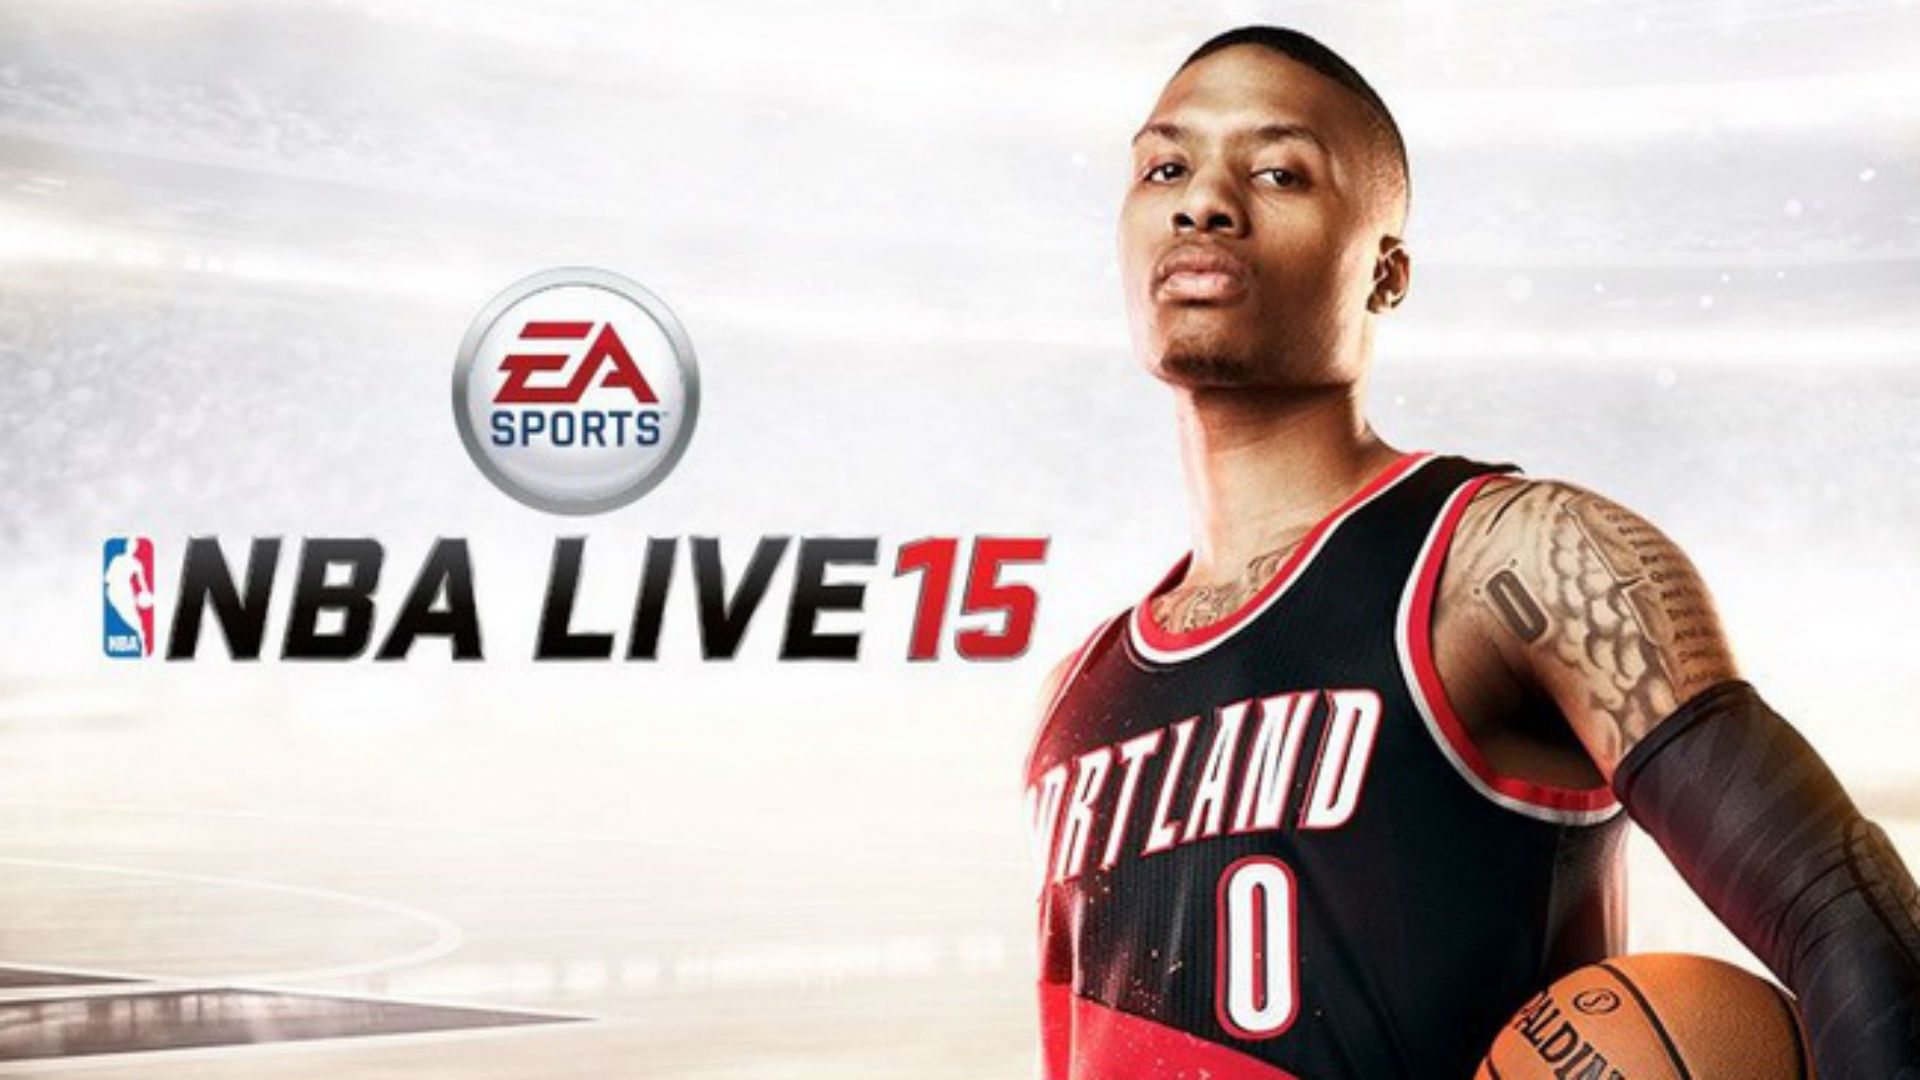 nba live 15 launches today for xbox one and ps4 that videogame blog. Black Bedroom Furniture Sets. Home Design Ideas